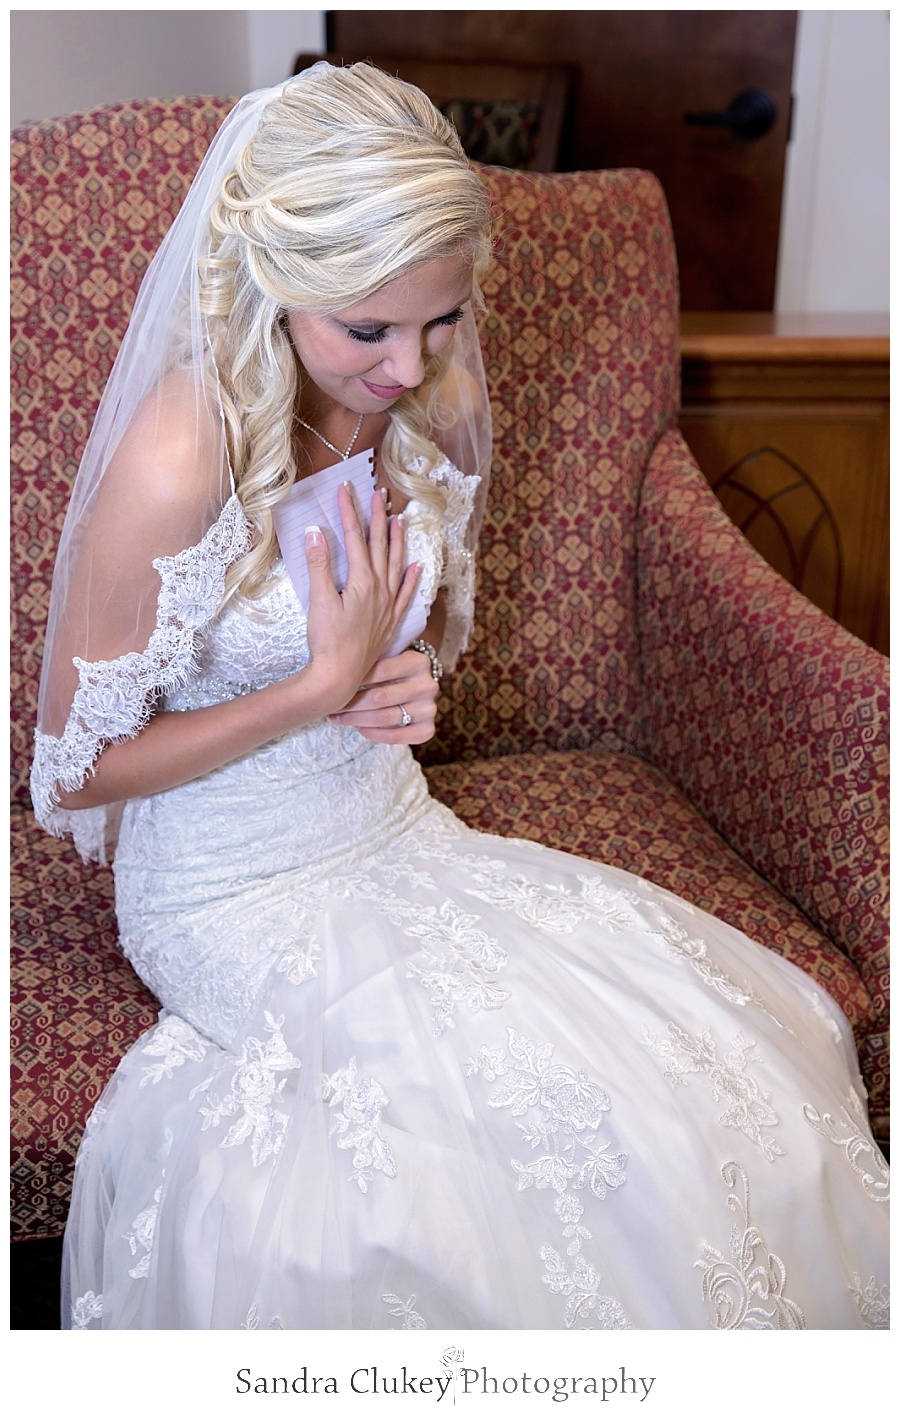 Brides reaction after reading letter from groom